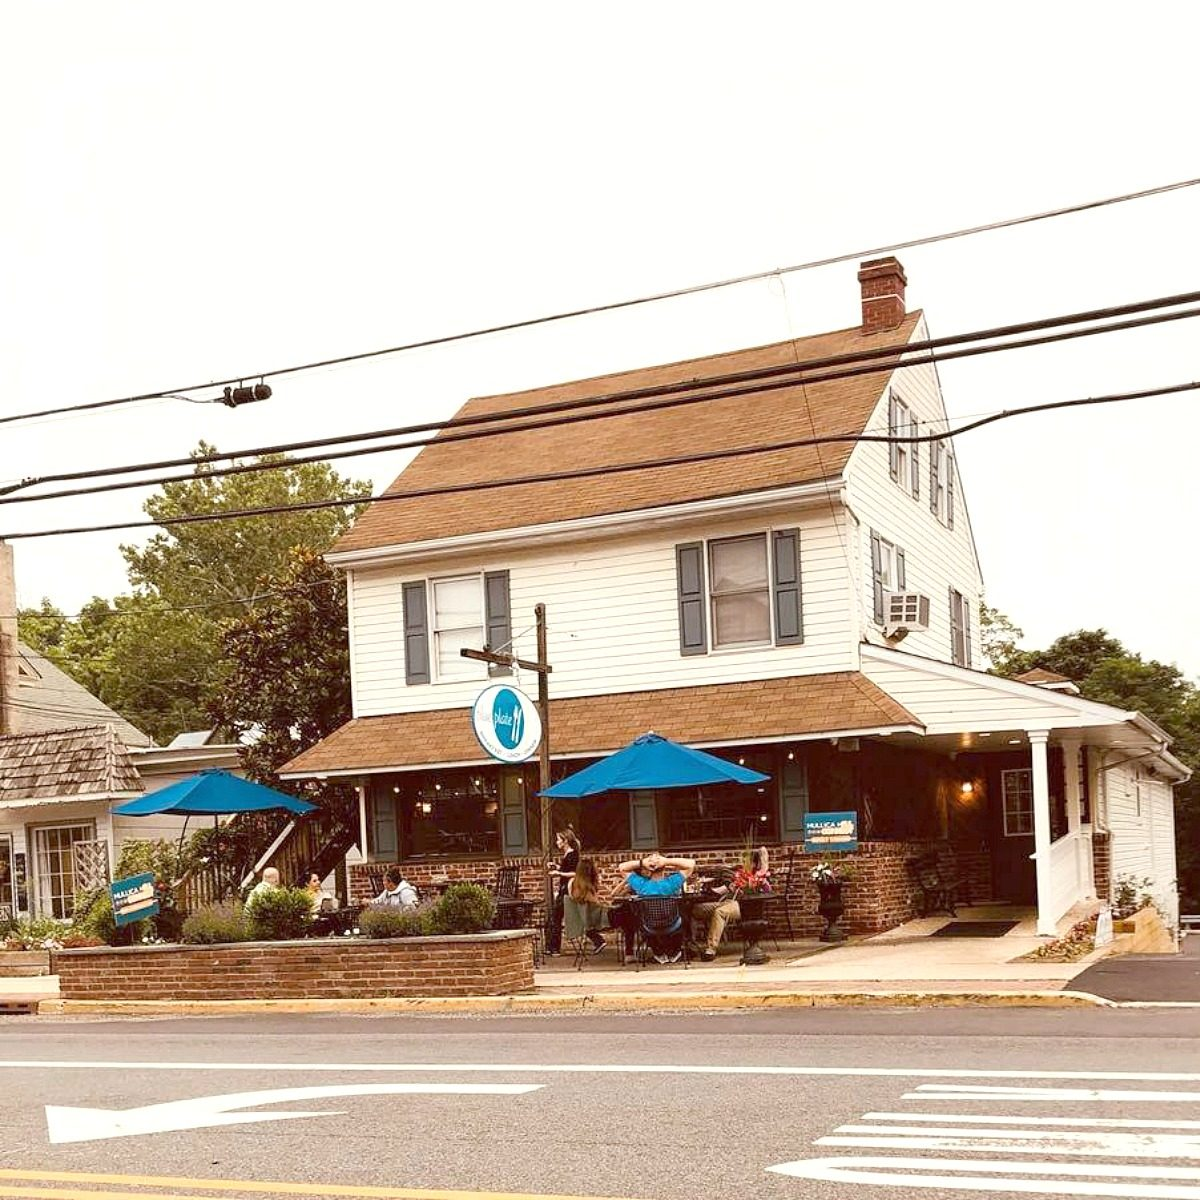 Outside of the Blue Plate restaurant